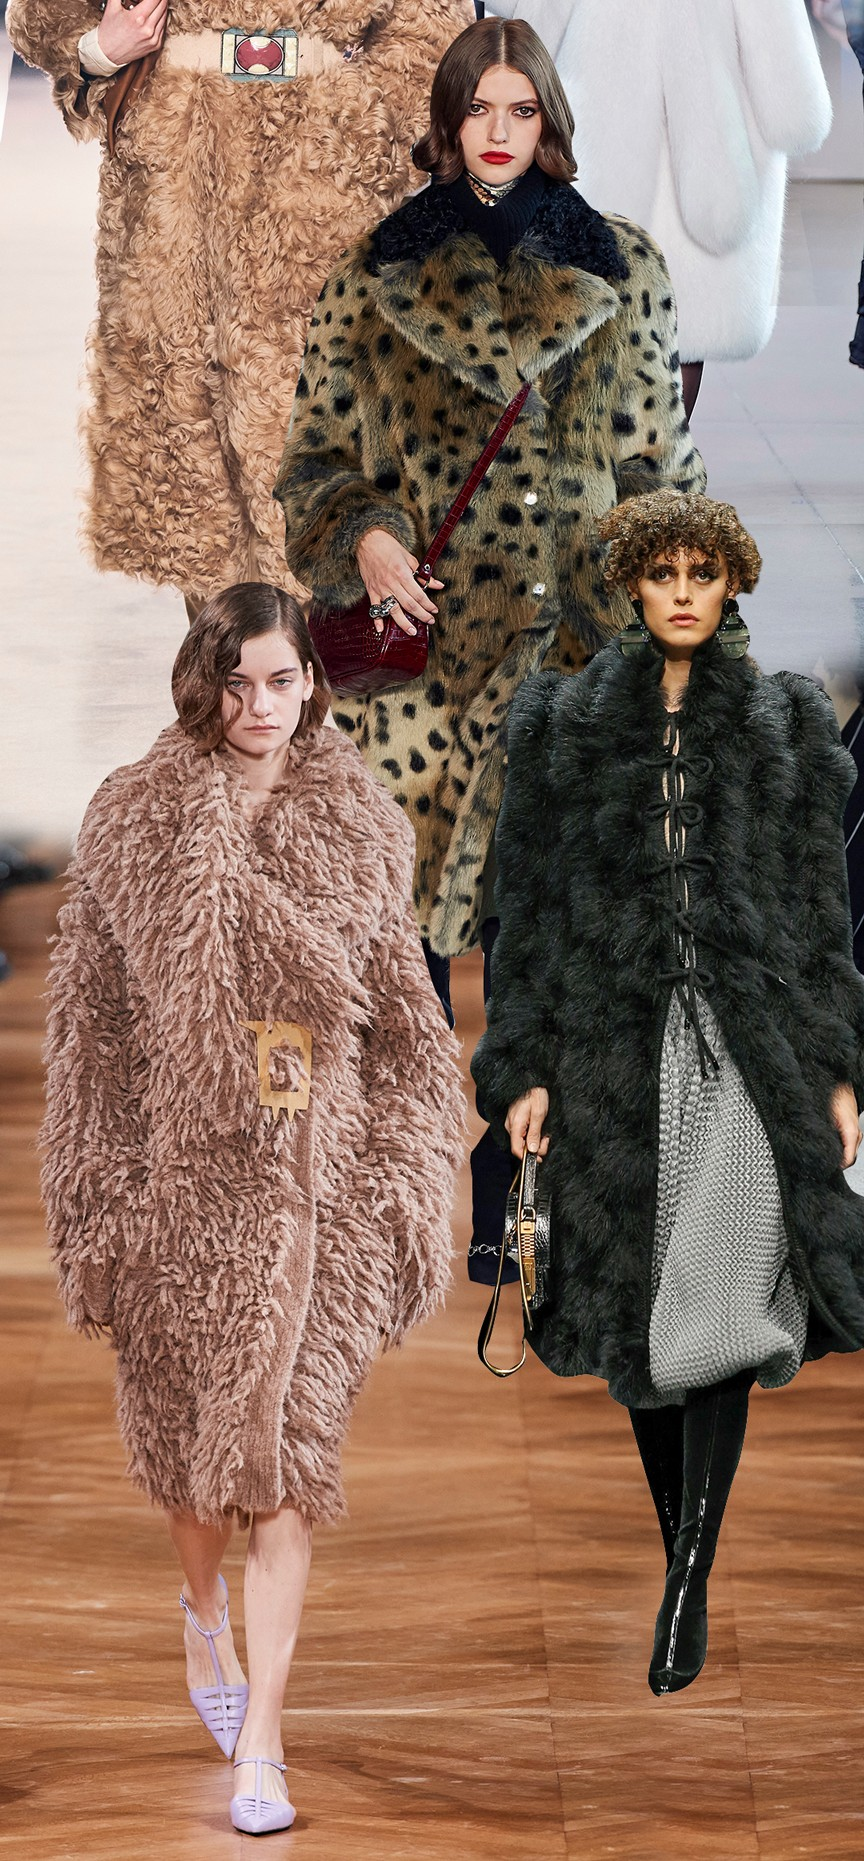 The Hottest And Most Coveted Fashion Trends From The Fall 2020 Runways (8) fashion trend The Hottest And Most Coveted Fashion Trends From The Fall 2020 Runways The Hottest And Most Coveted Fashion Trends From The Fall 2020 Runways 8